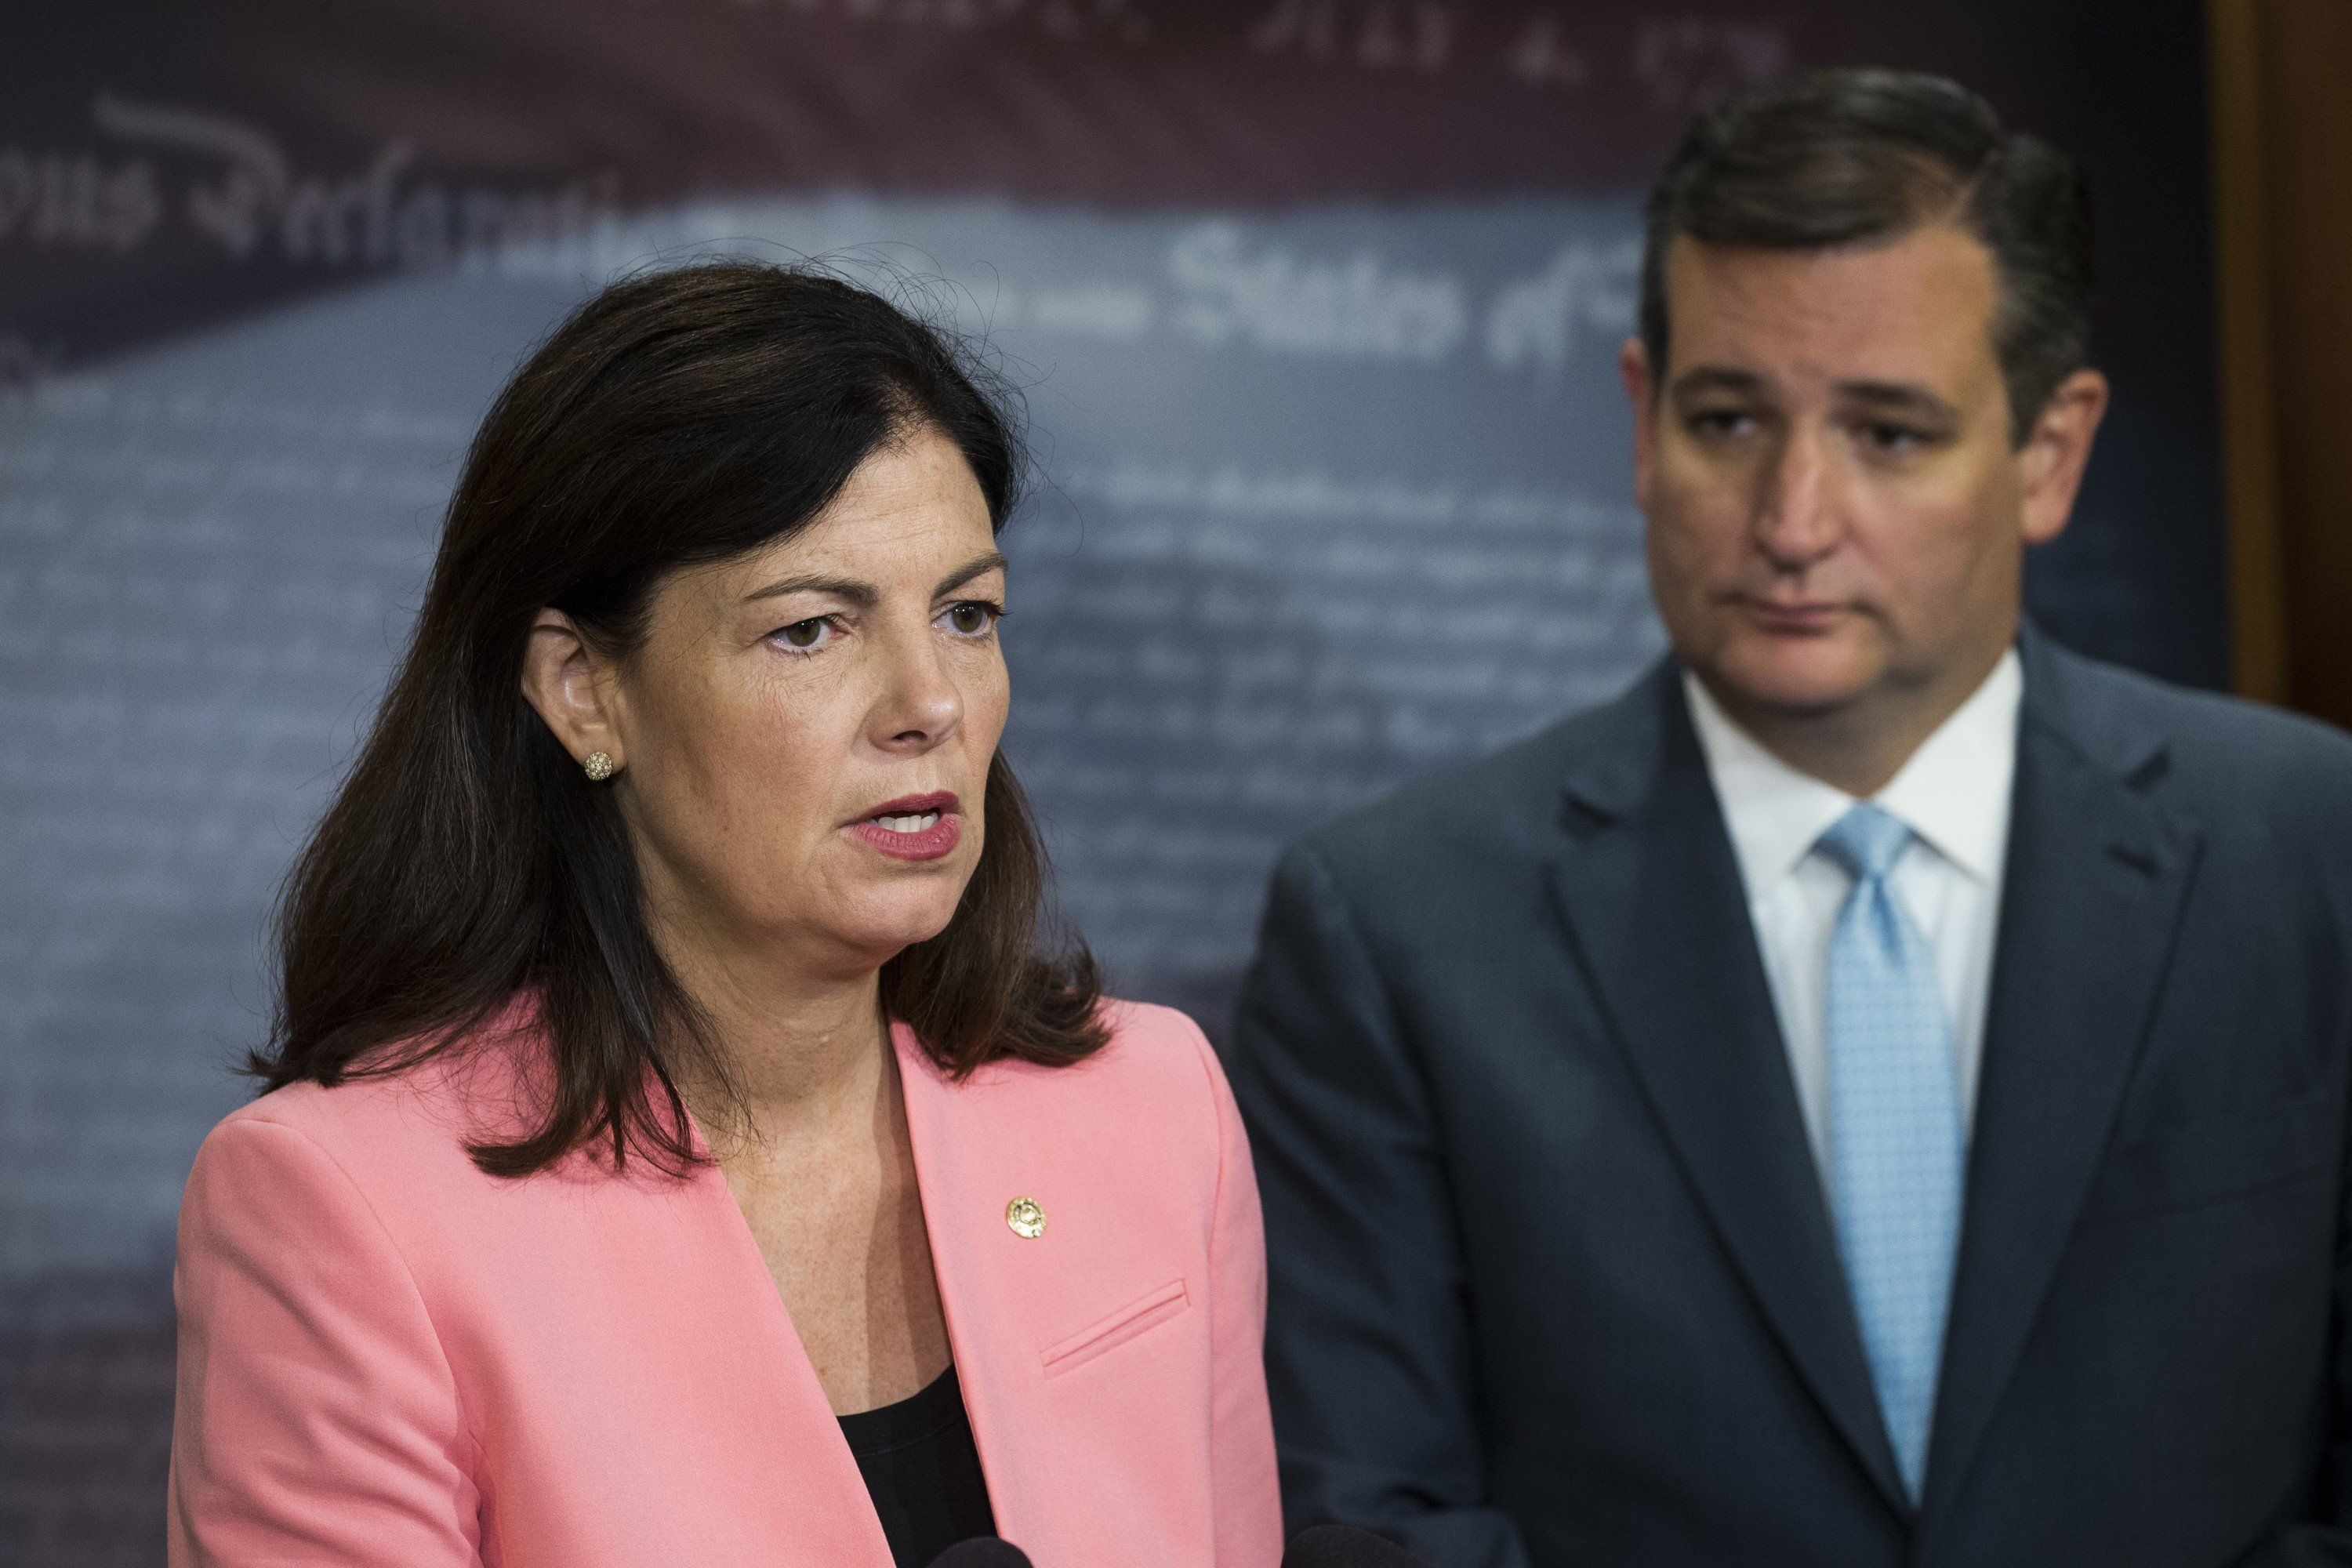 WASHINGTON, USA - September 20: Senator Kelly Ayotte speaks during a press conference to announce their intentions to increase the amount of military aid given to Israel on top of the current MOU between the US and Israel to counter Iranian actions in Washington, USA on September 20, 2016. (Photo by Samuel Corum/Anadolu Agency/Getty Images)